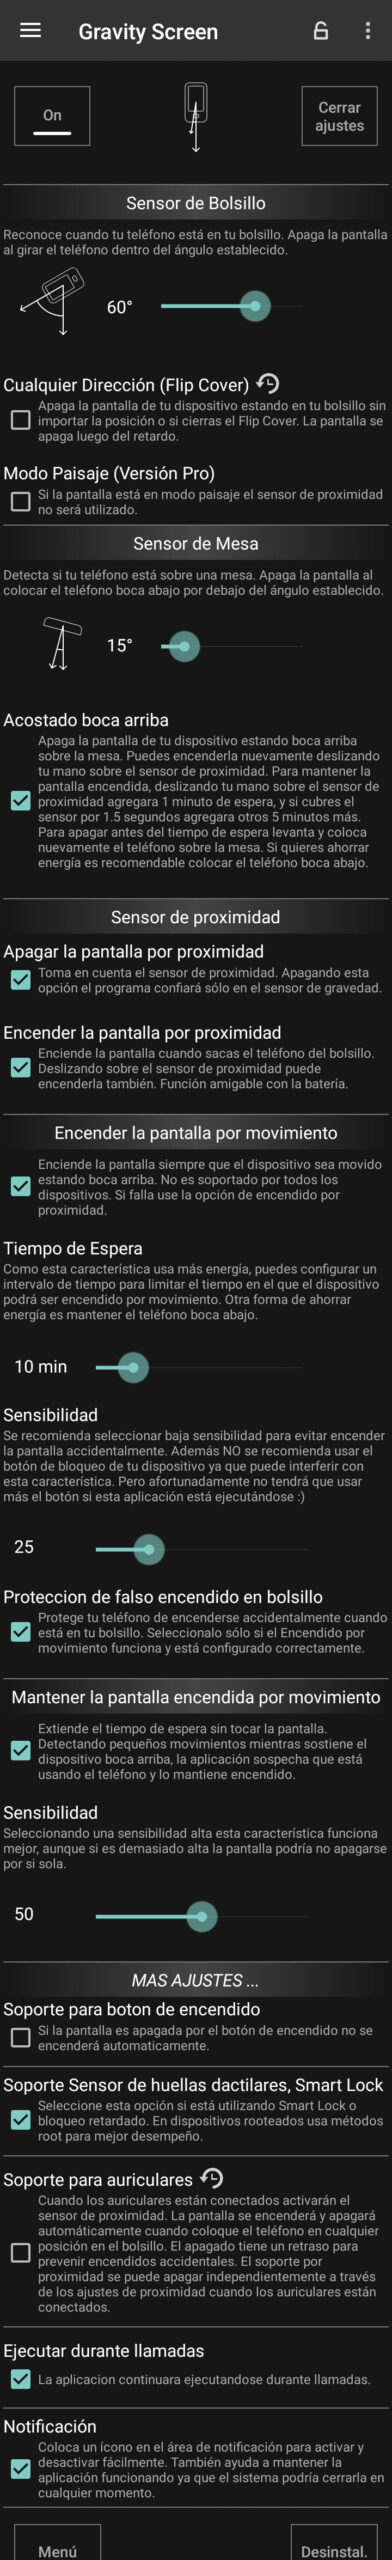 gravity screen ajustes